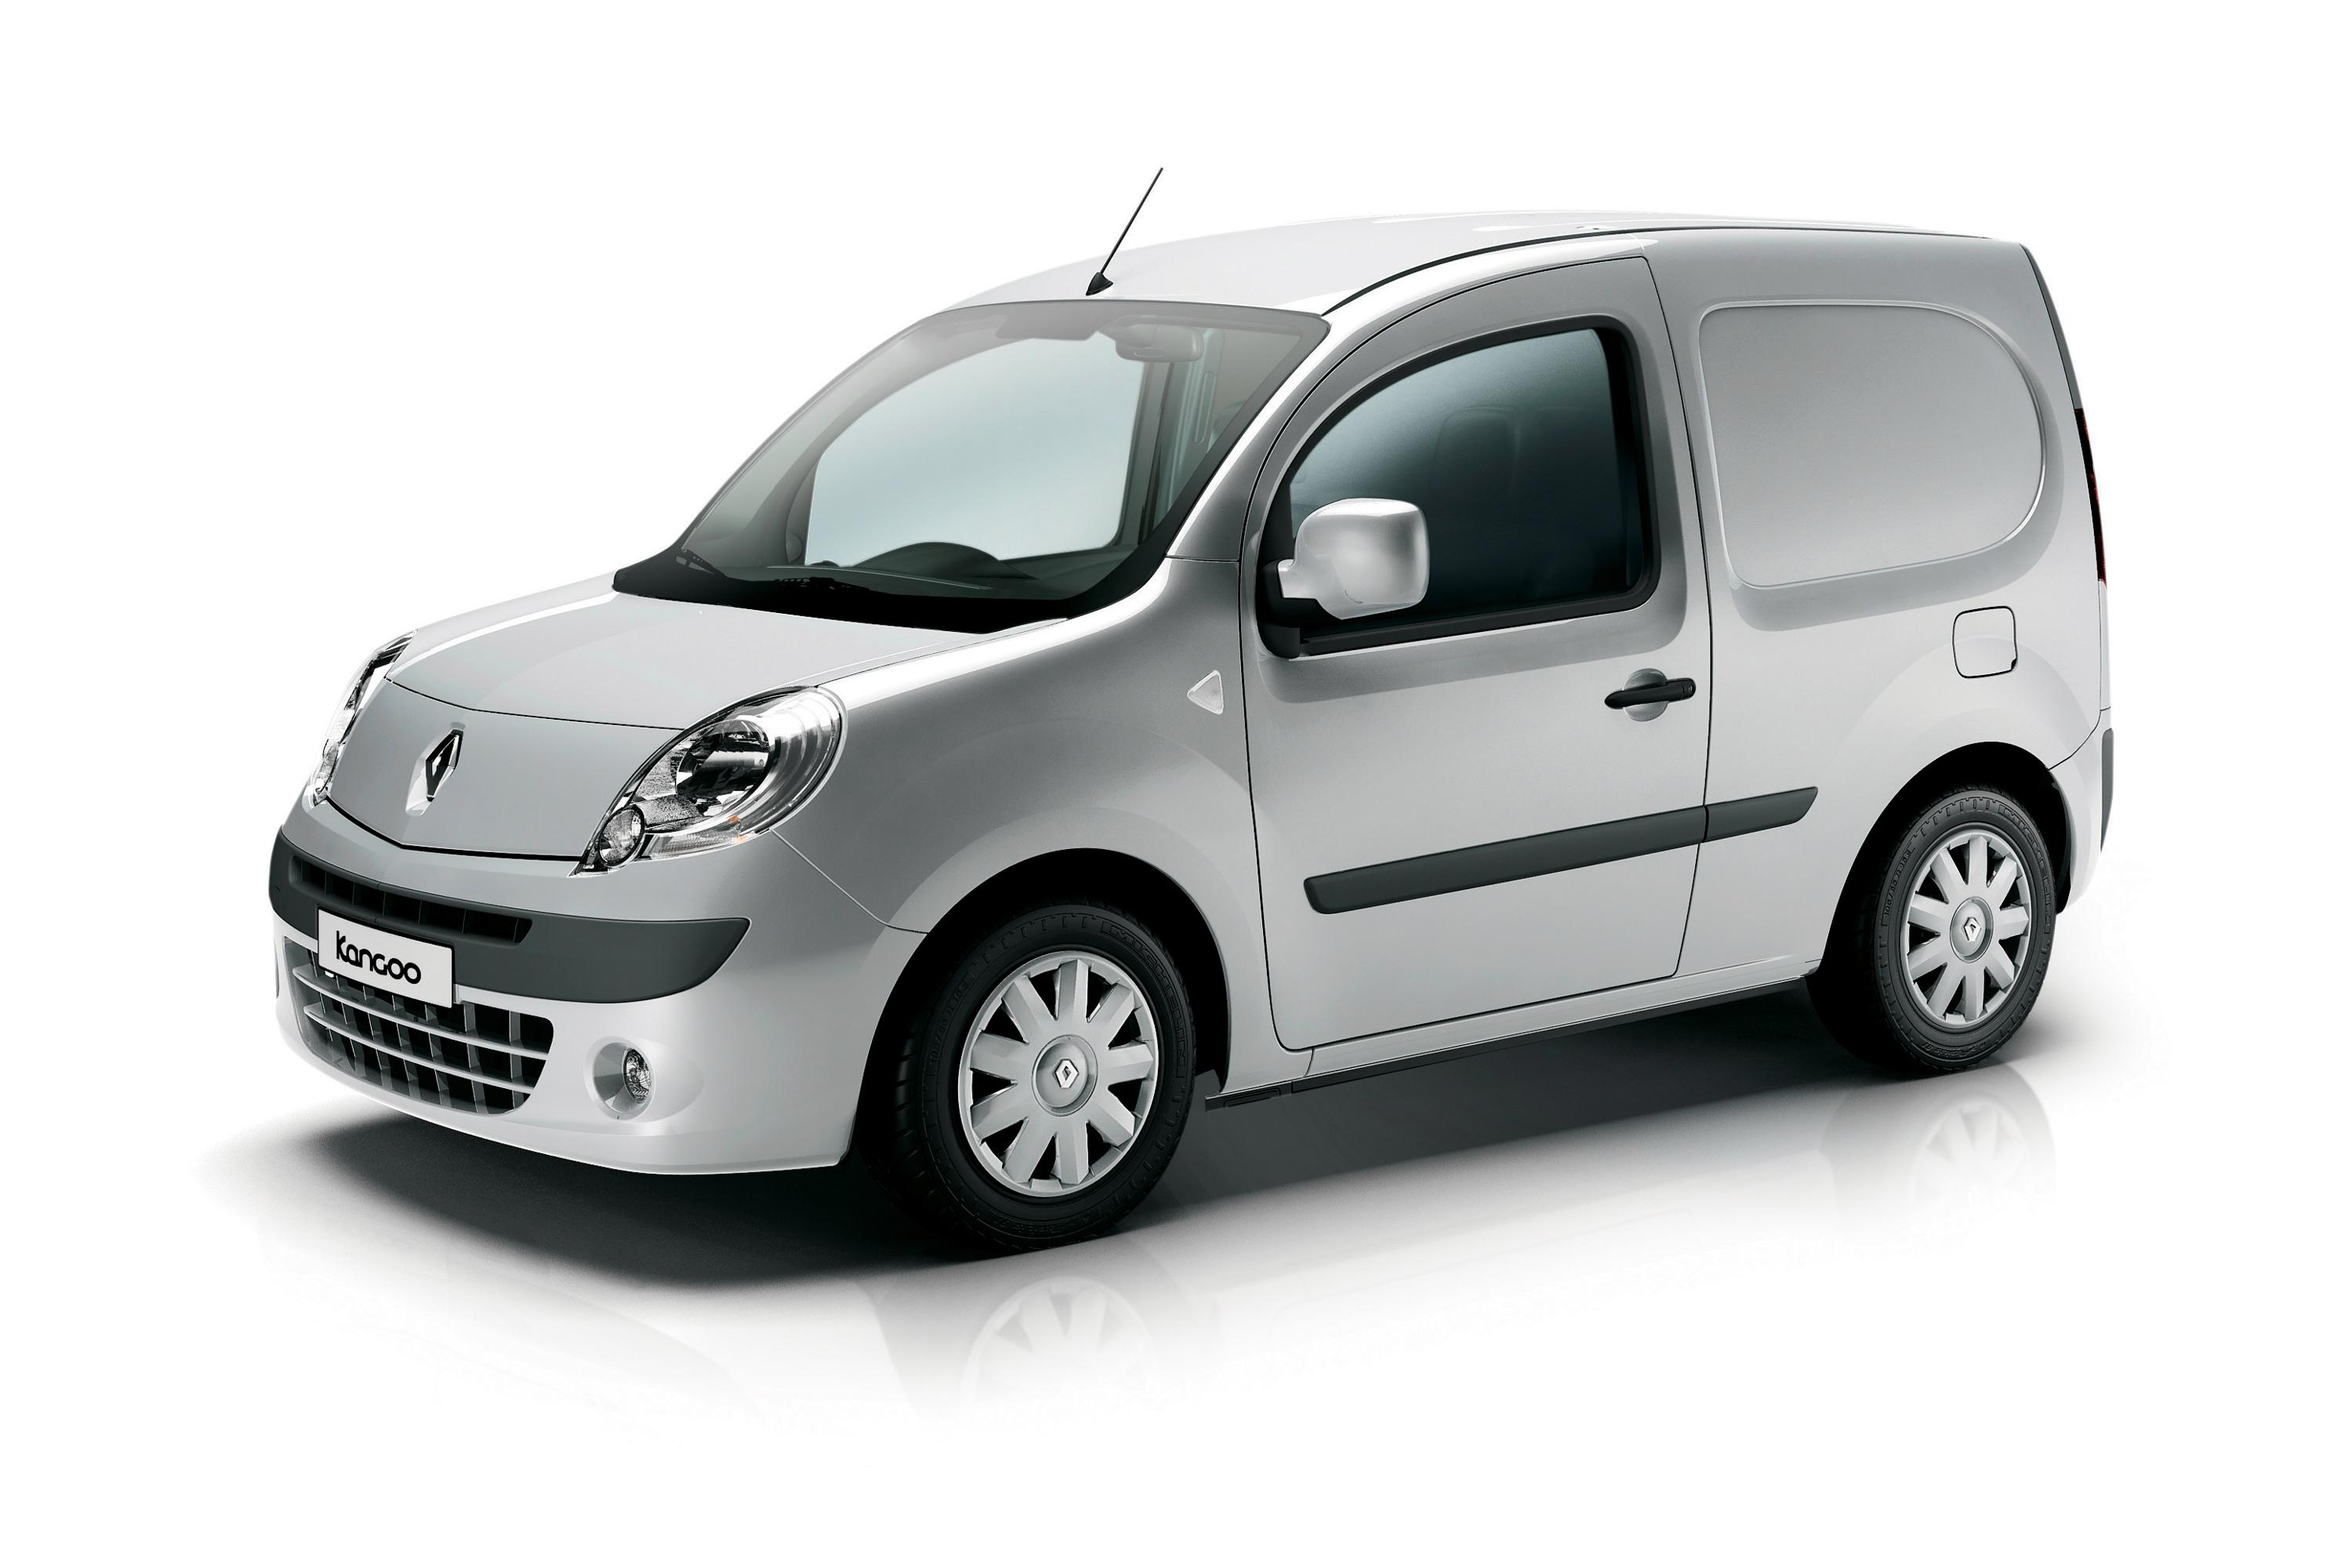 nouvelle renault kangoo express compact toutes les infos et photos hd. Black Bedroom Furniture Sets. Home Design Ideas